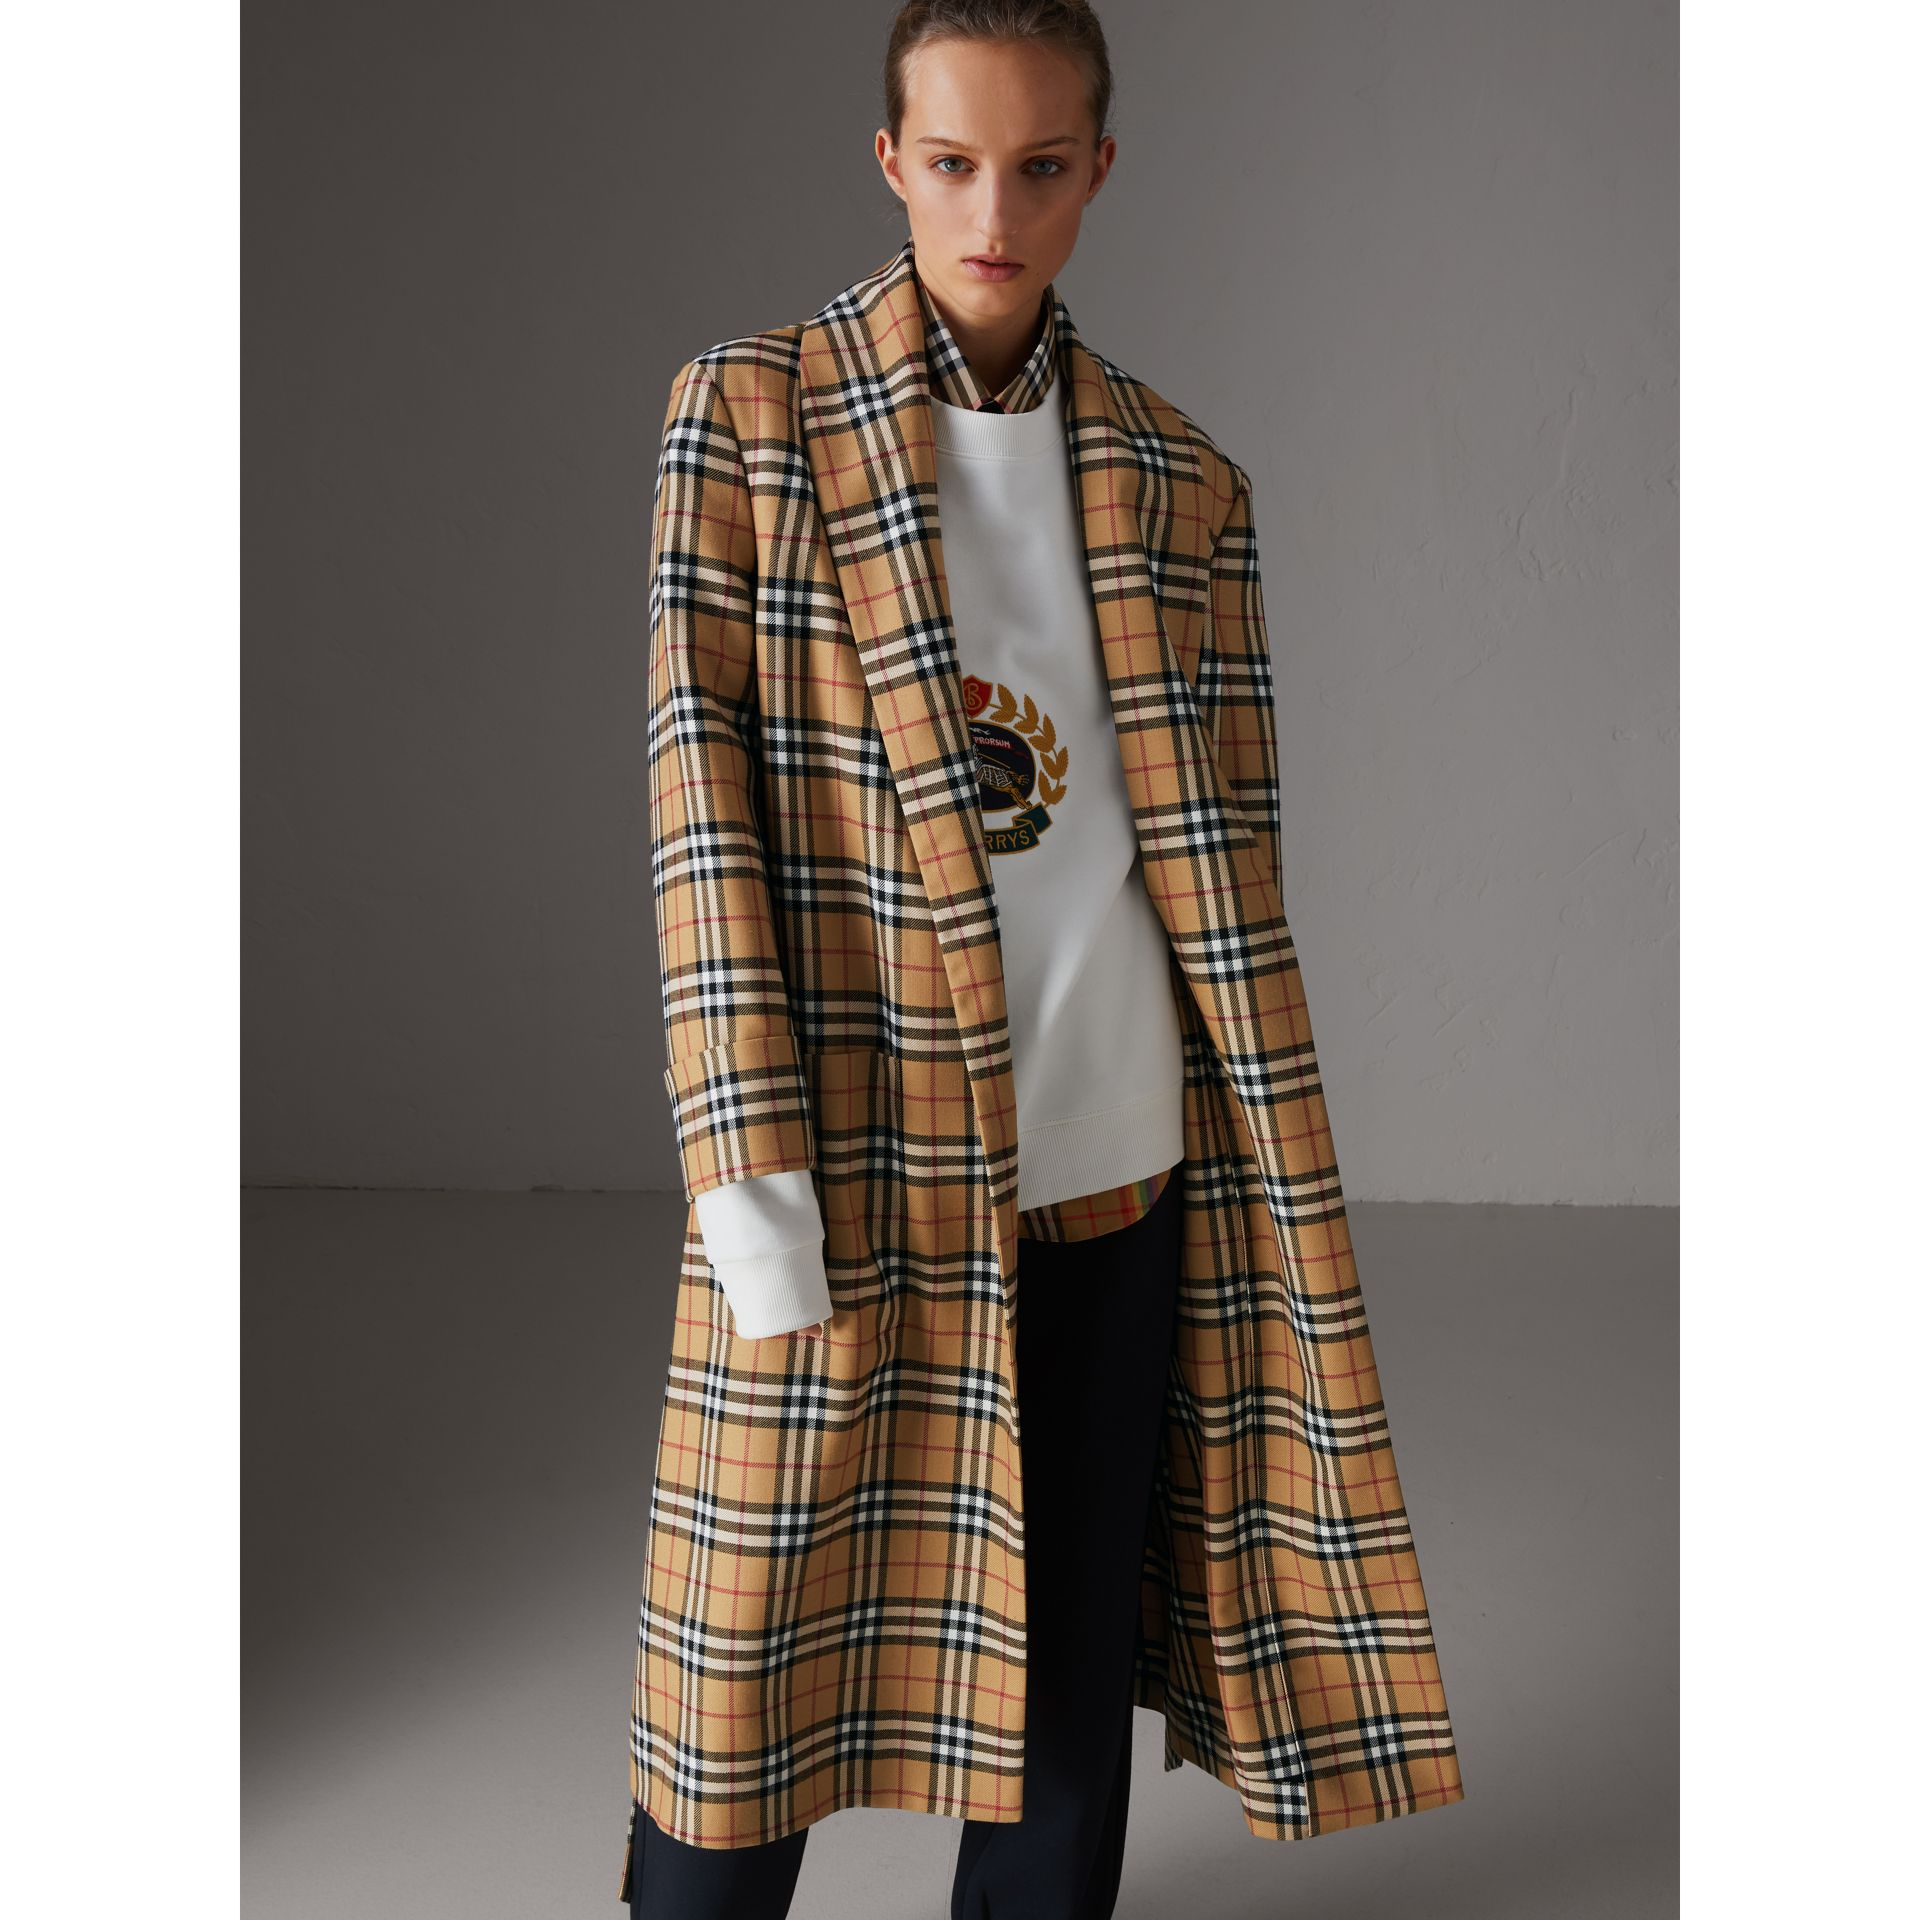 Manteau peignoir à motif Vintage check revisité (Jaune Antique) - Femme | Burberry Canada - photo de la galerie 6